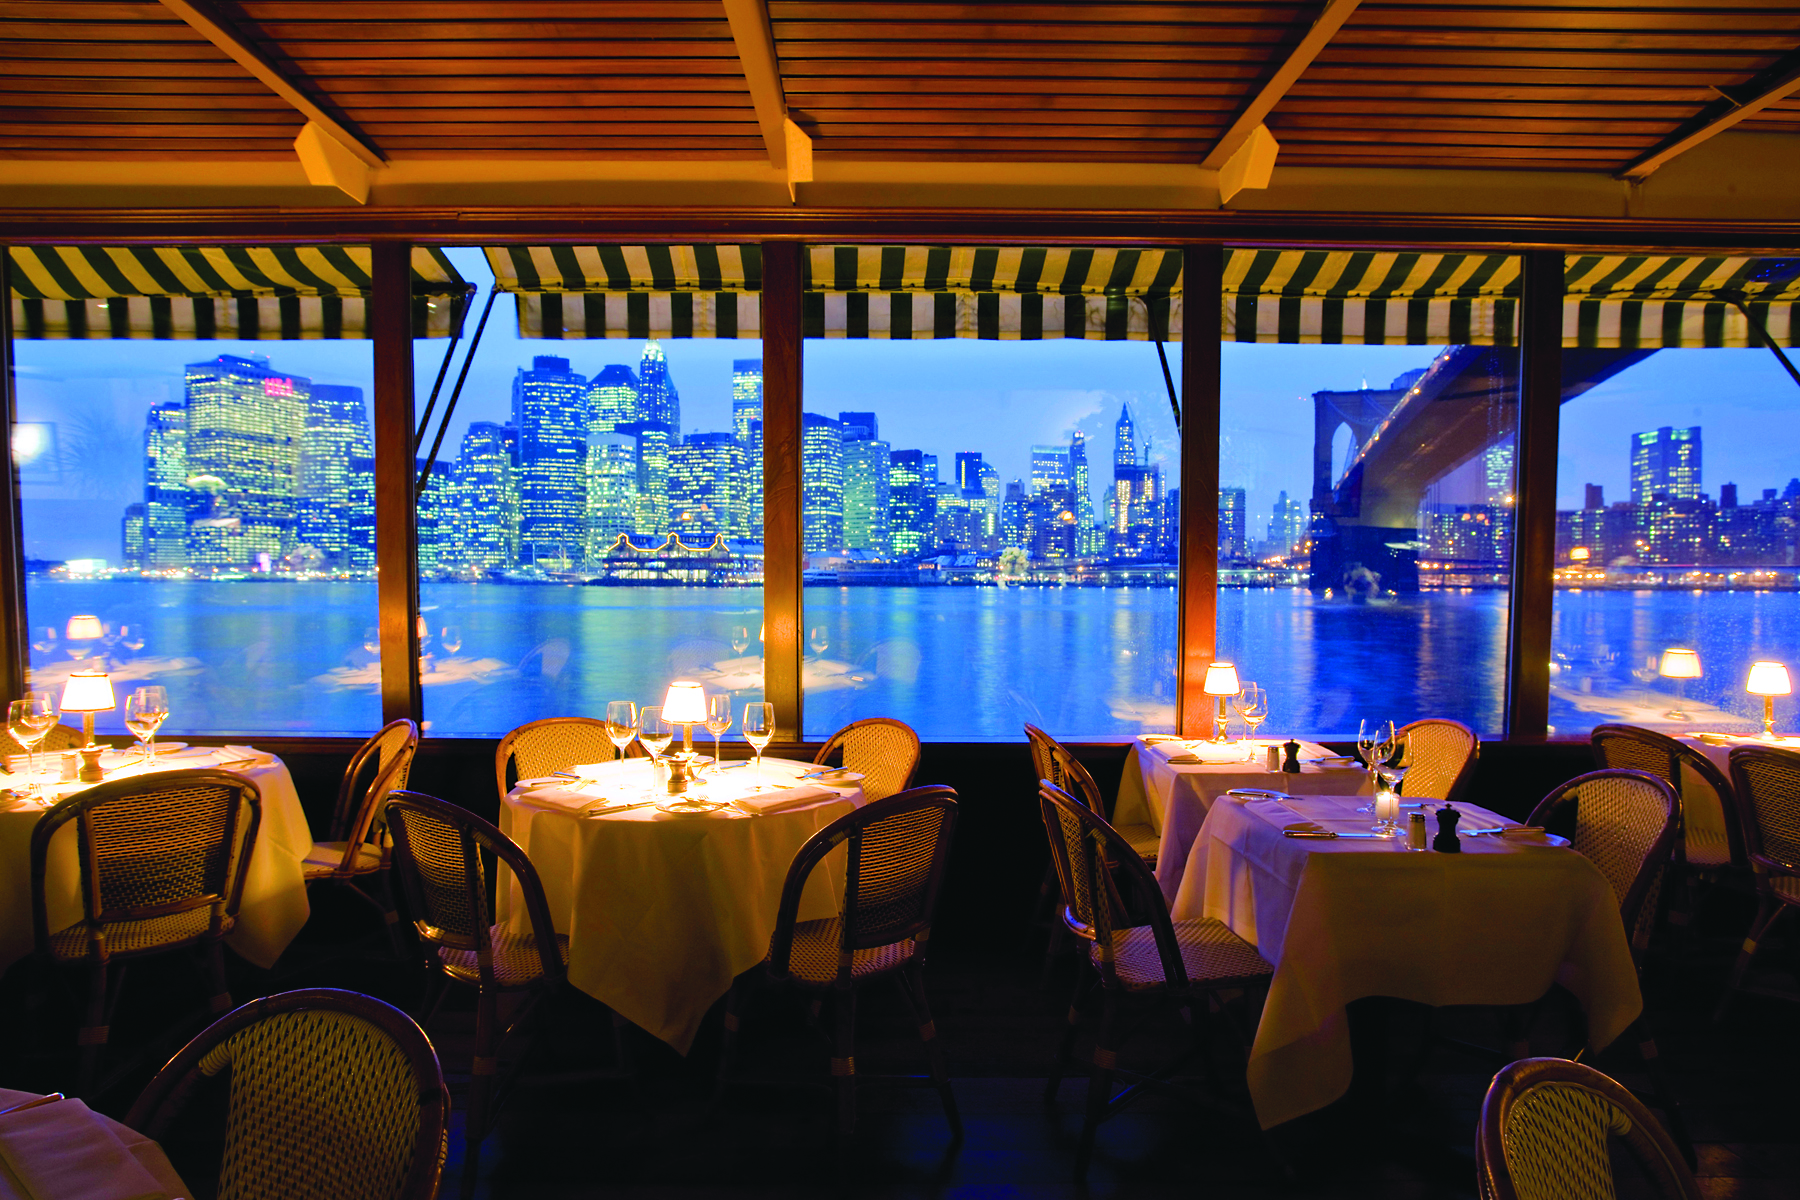 Restaurant A New York Nyc Restaurants With A View Wheretraveler